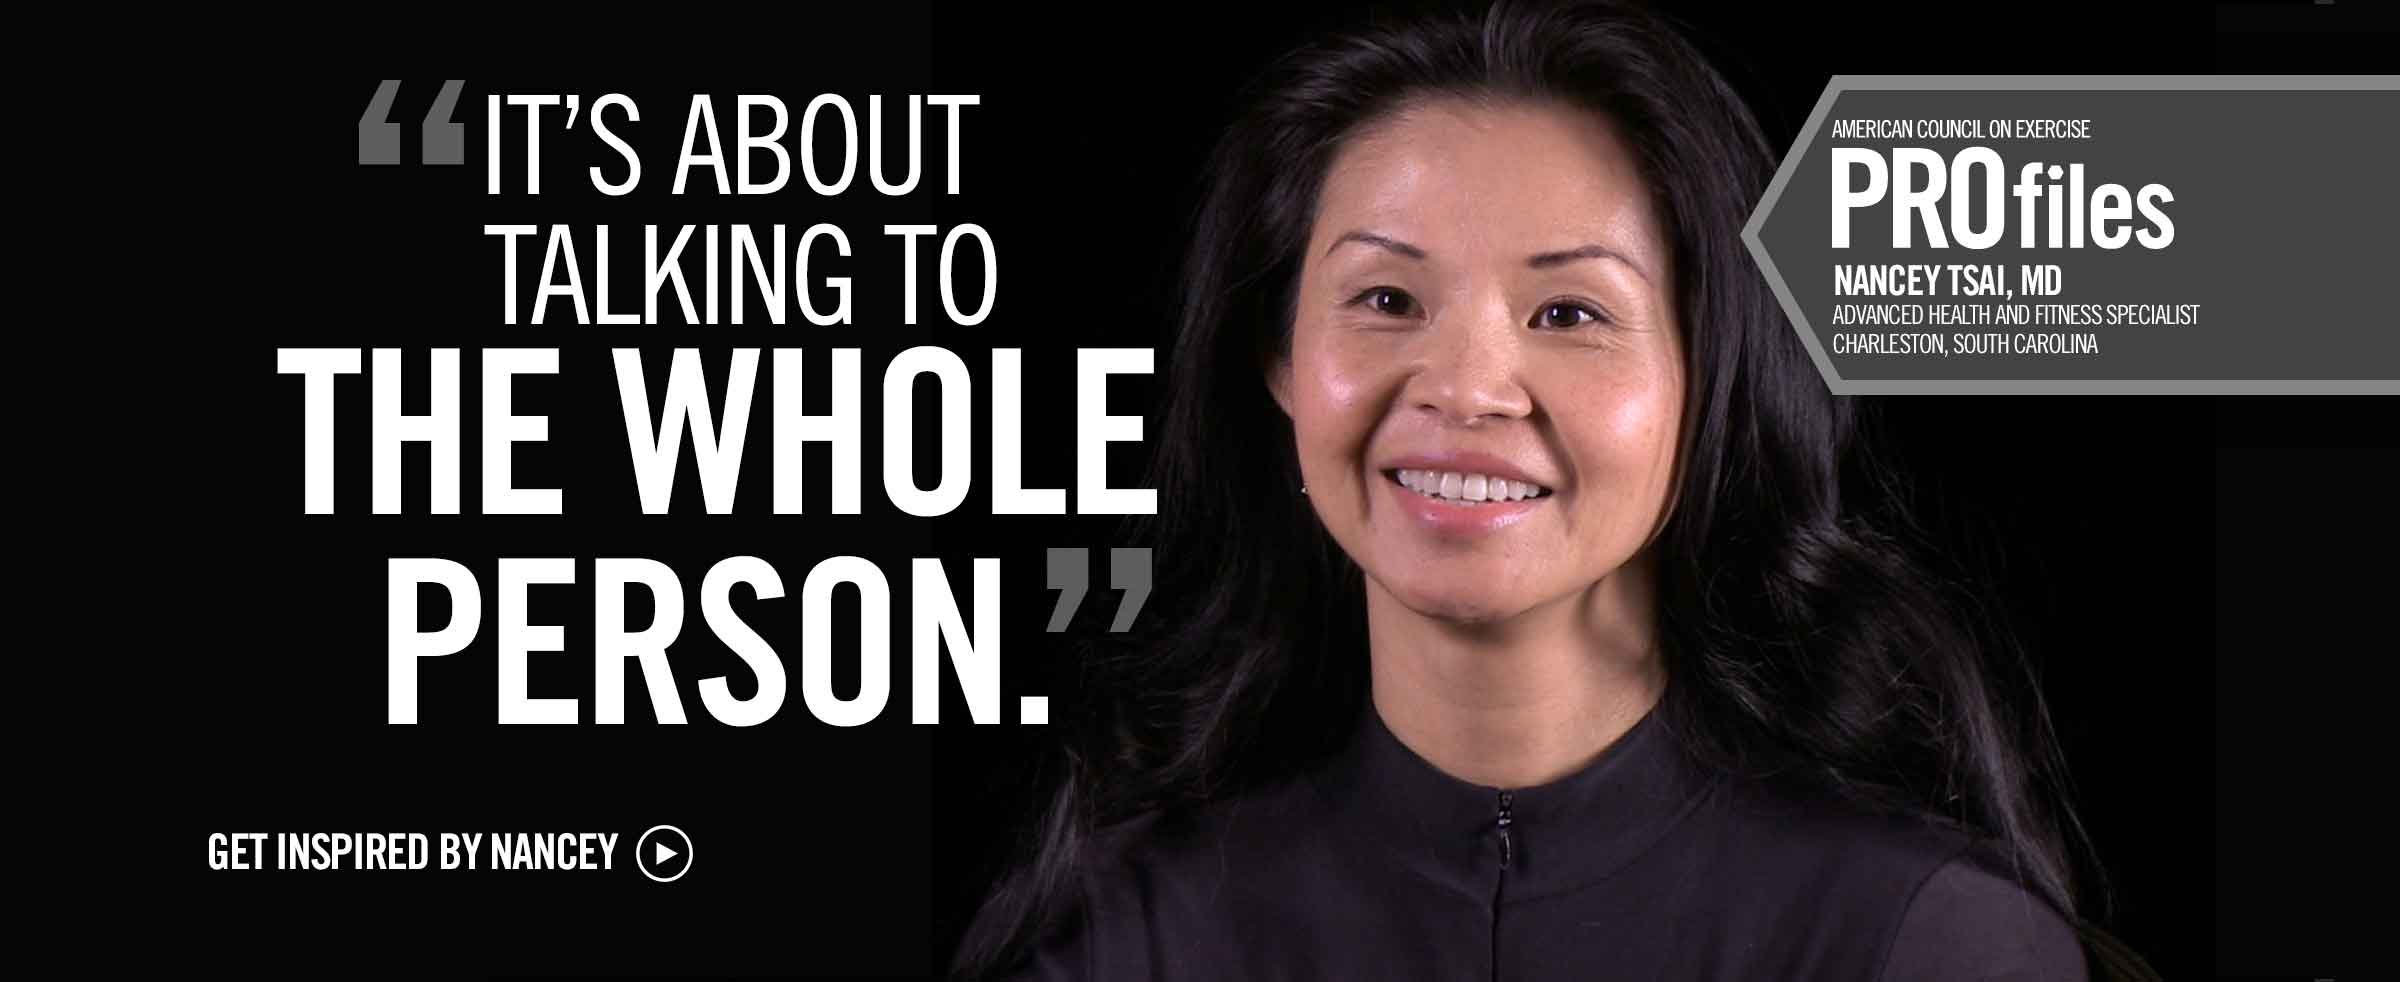 It's About Talking to the Whole Person - Nancey Tsai, MD